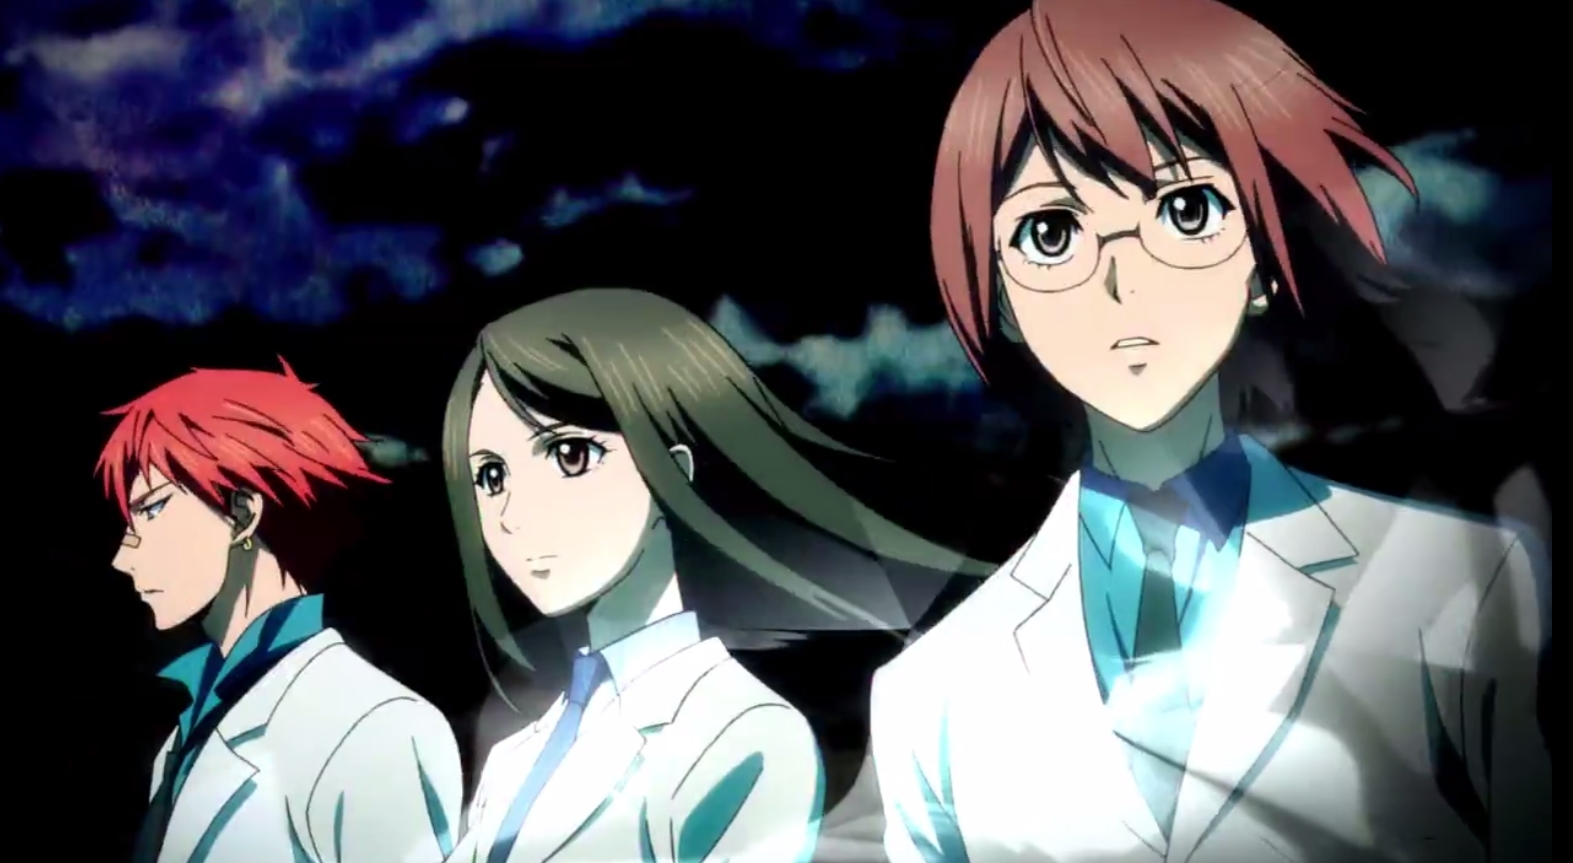 4 Pics 1 Anime Characters : Noblesse pamyeol ui sijak episode discussion forums